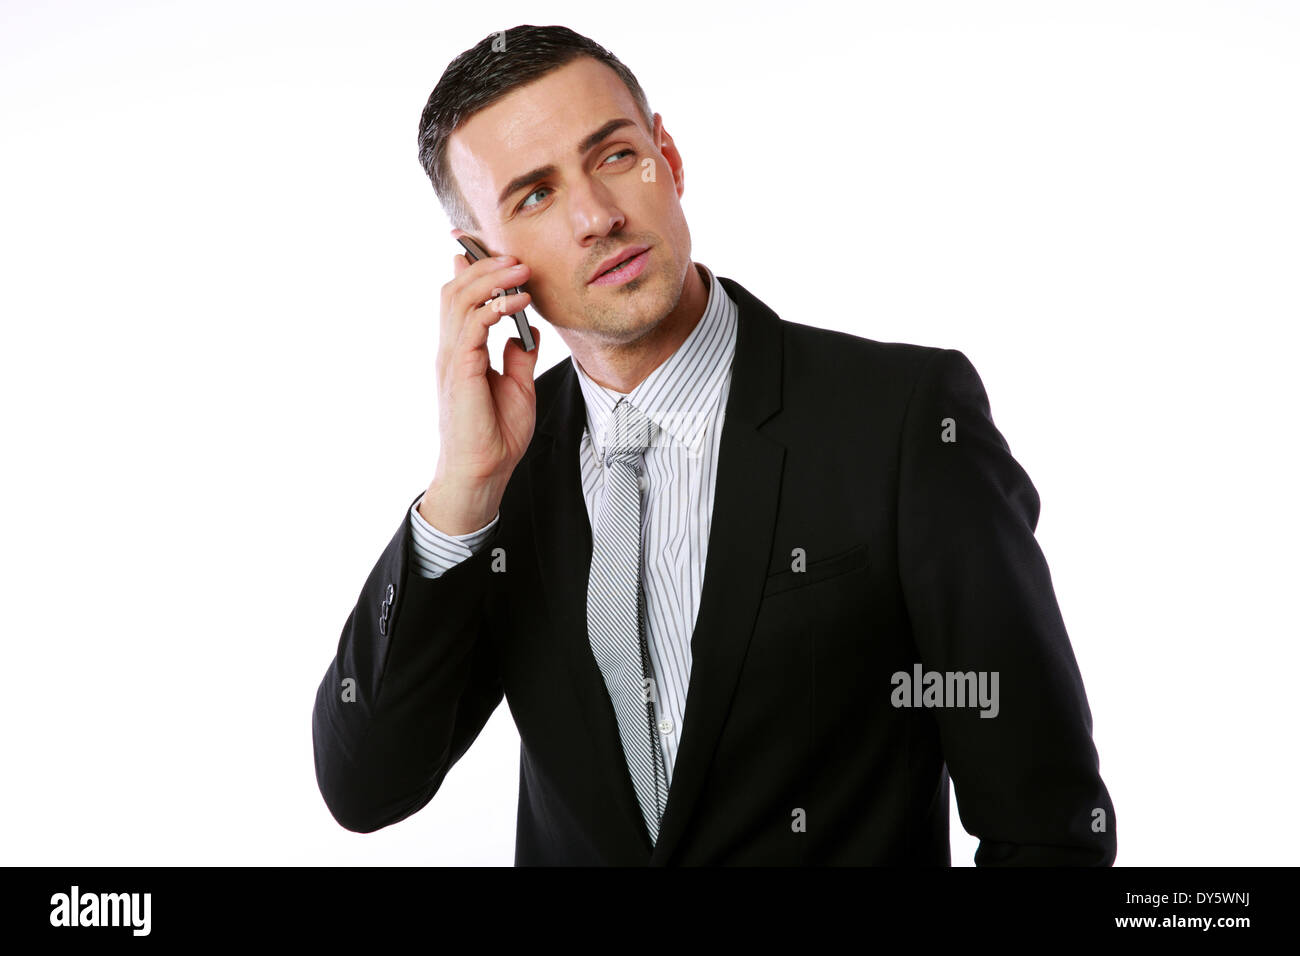 Confident businessman talking on the phone over white background - Stock Image